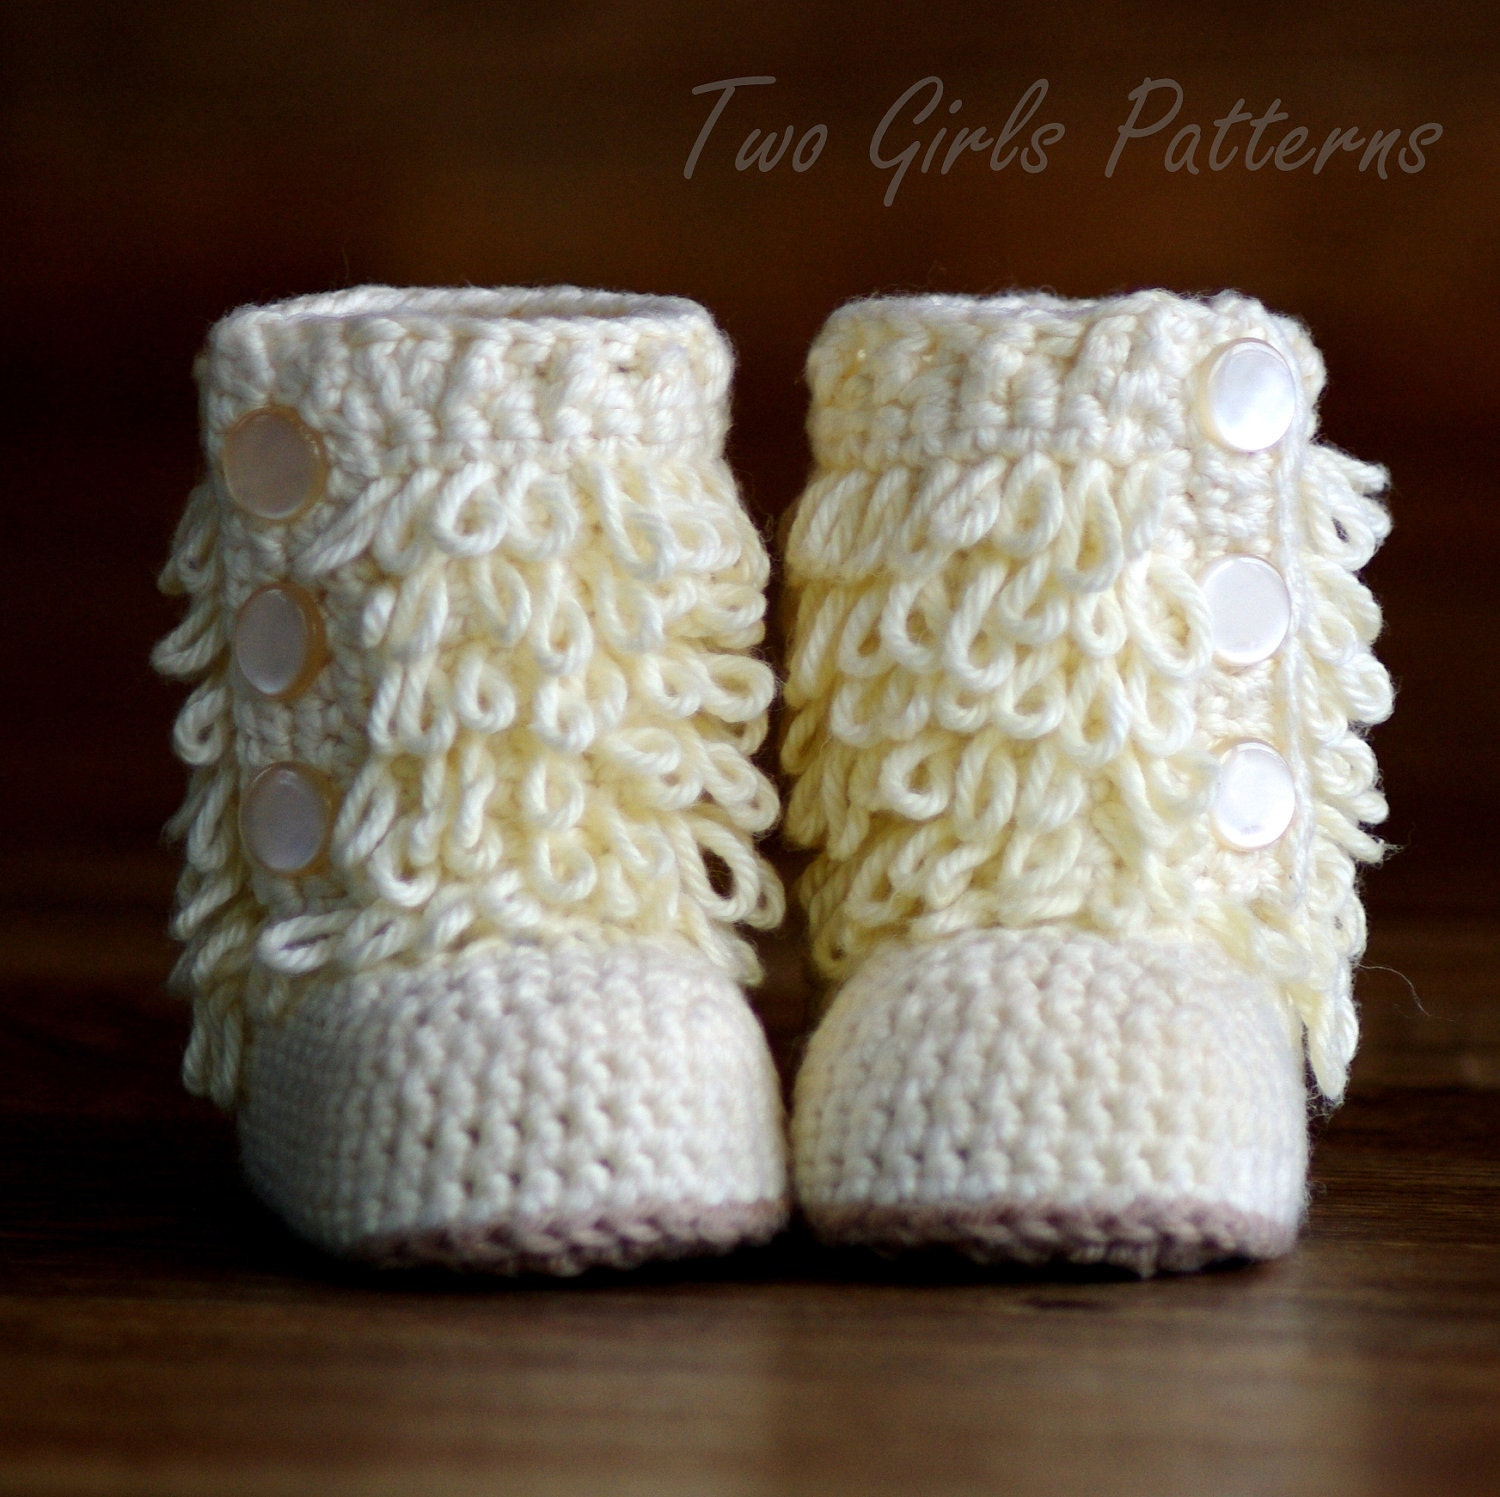 Crochet Patterns To Buy : Baby Crochet Boots Pattern Furrylicious by TwoGirlsPatterns